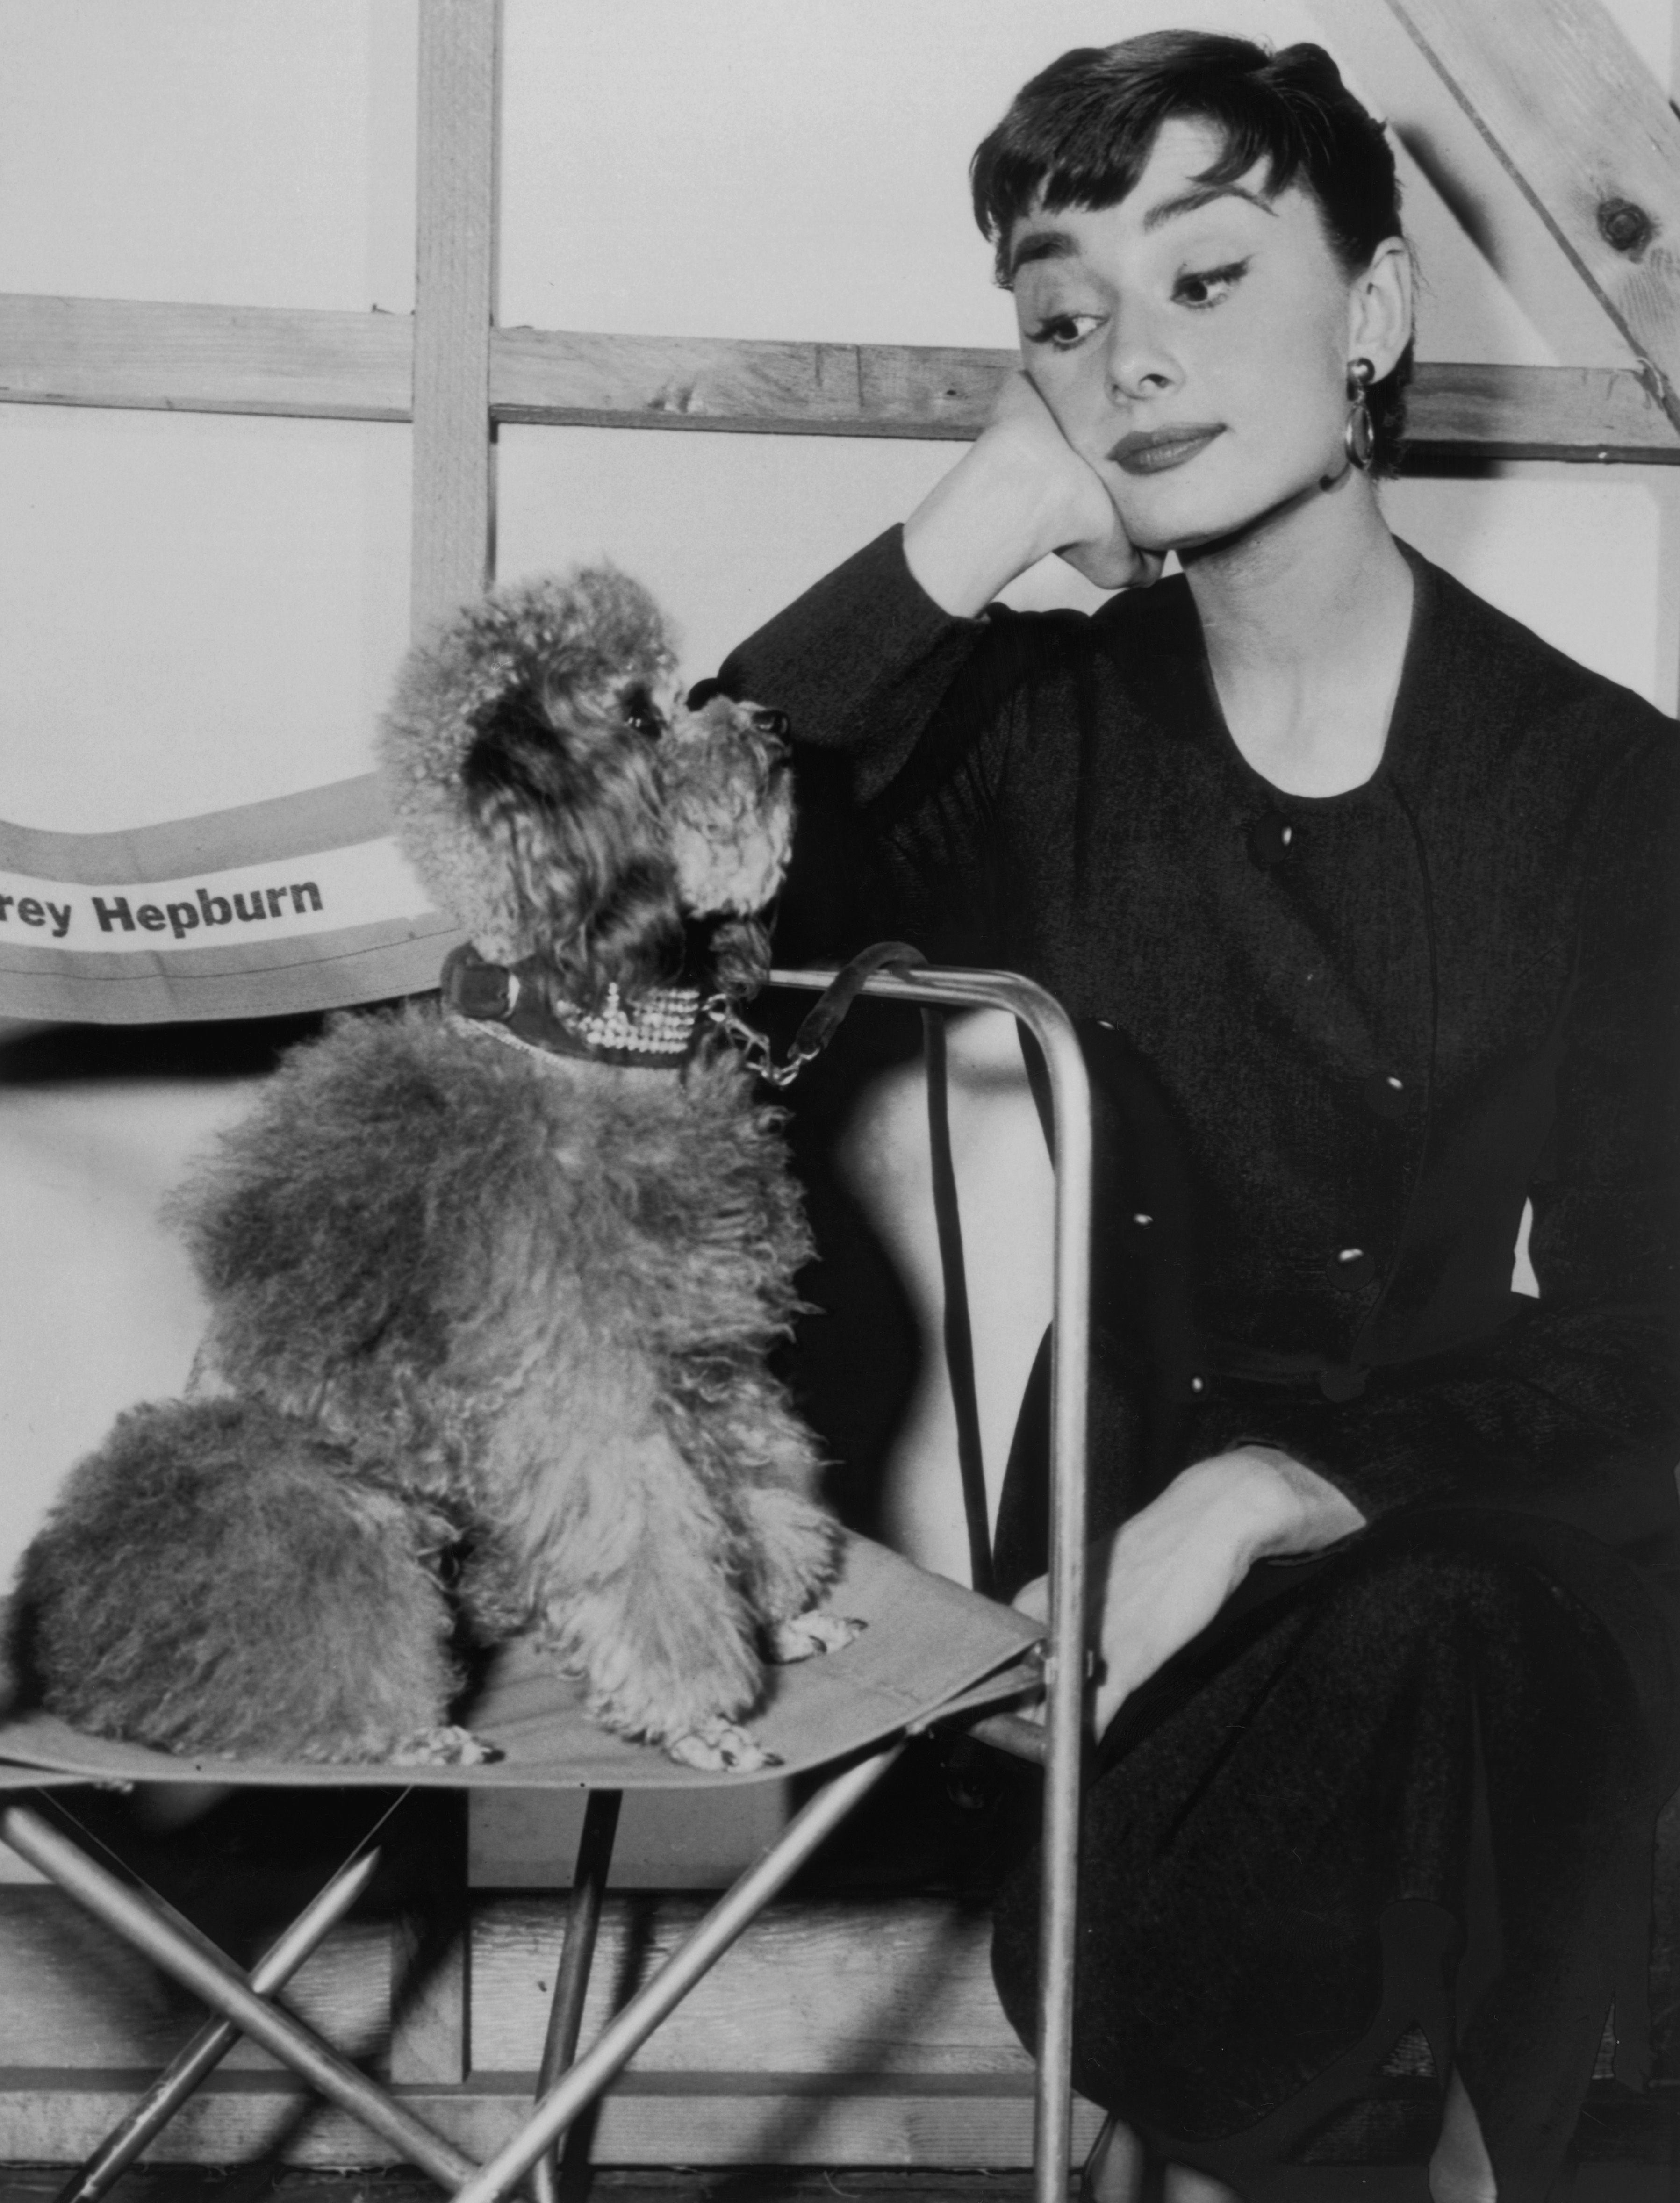 Audrey Hepburn on set with her pet dog, Mr Famous, circa 1960   Source: Getty Images